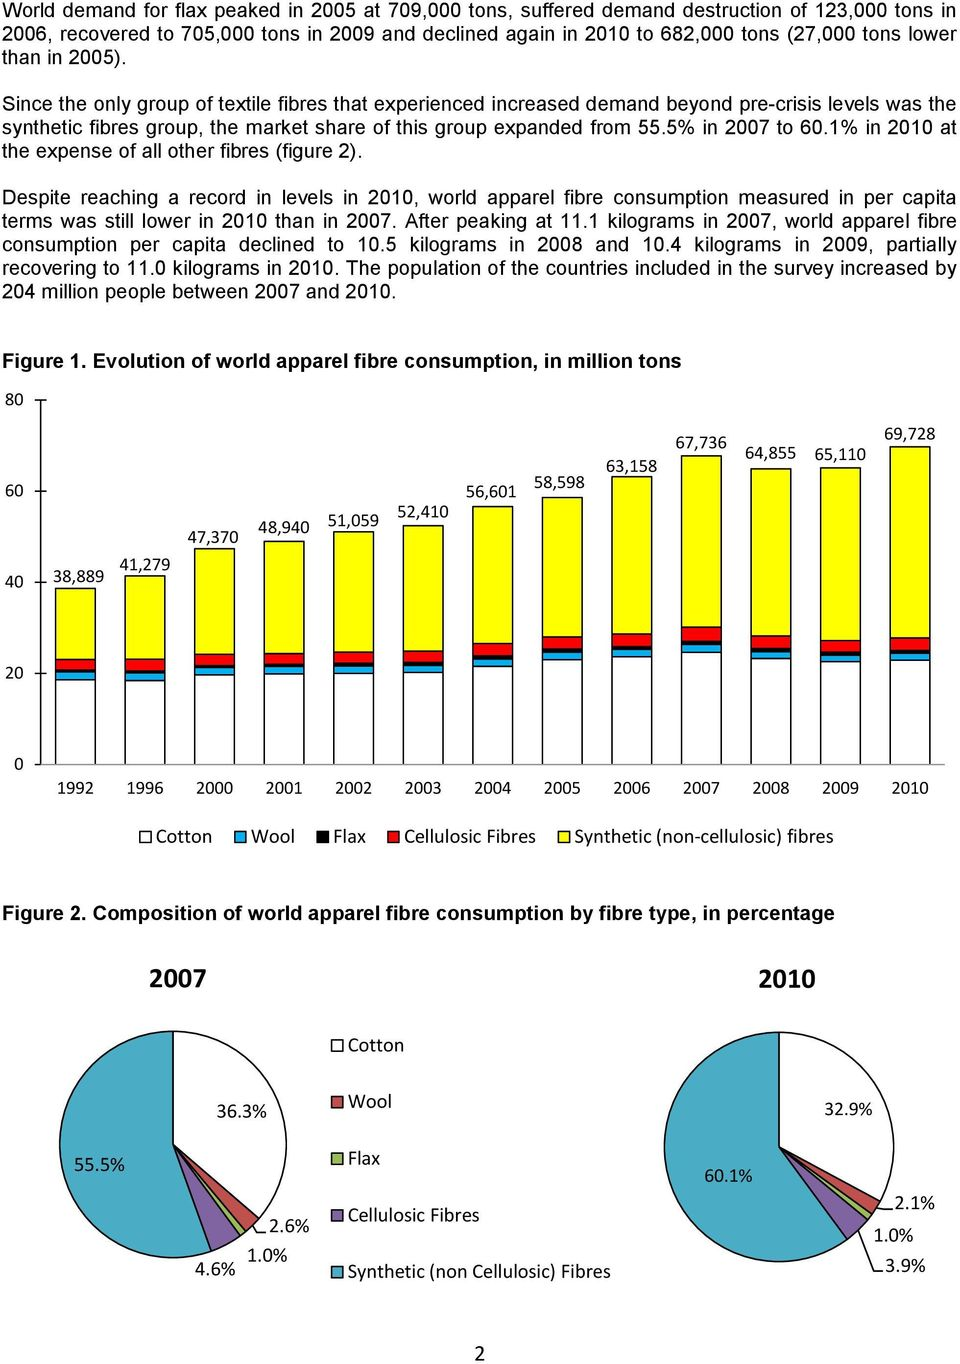 5% in 2007 to 60.1% in 2010 at the expense of all other fibres (figure 2).